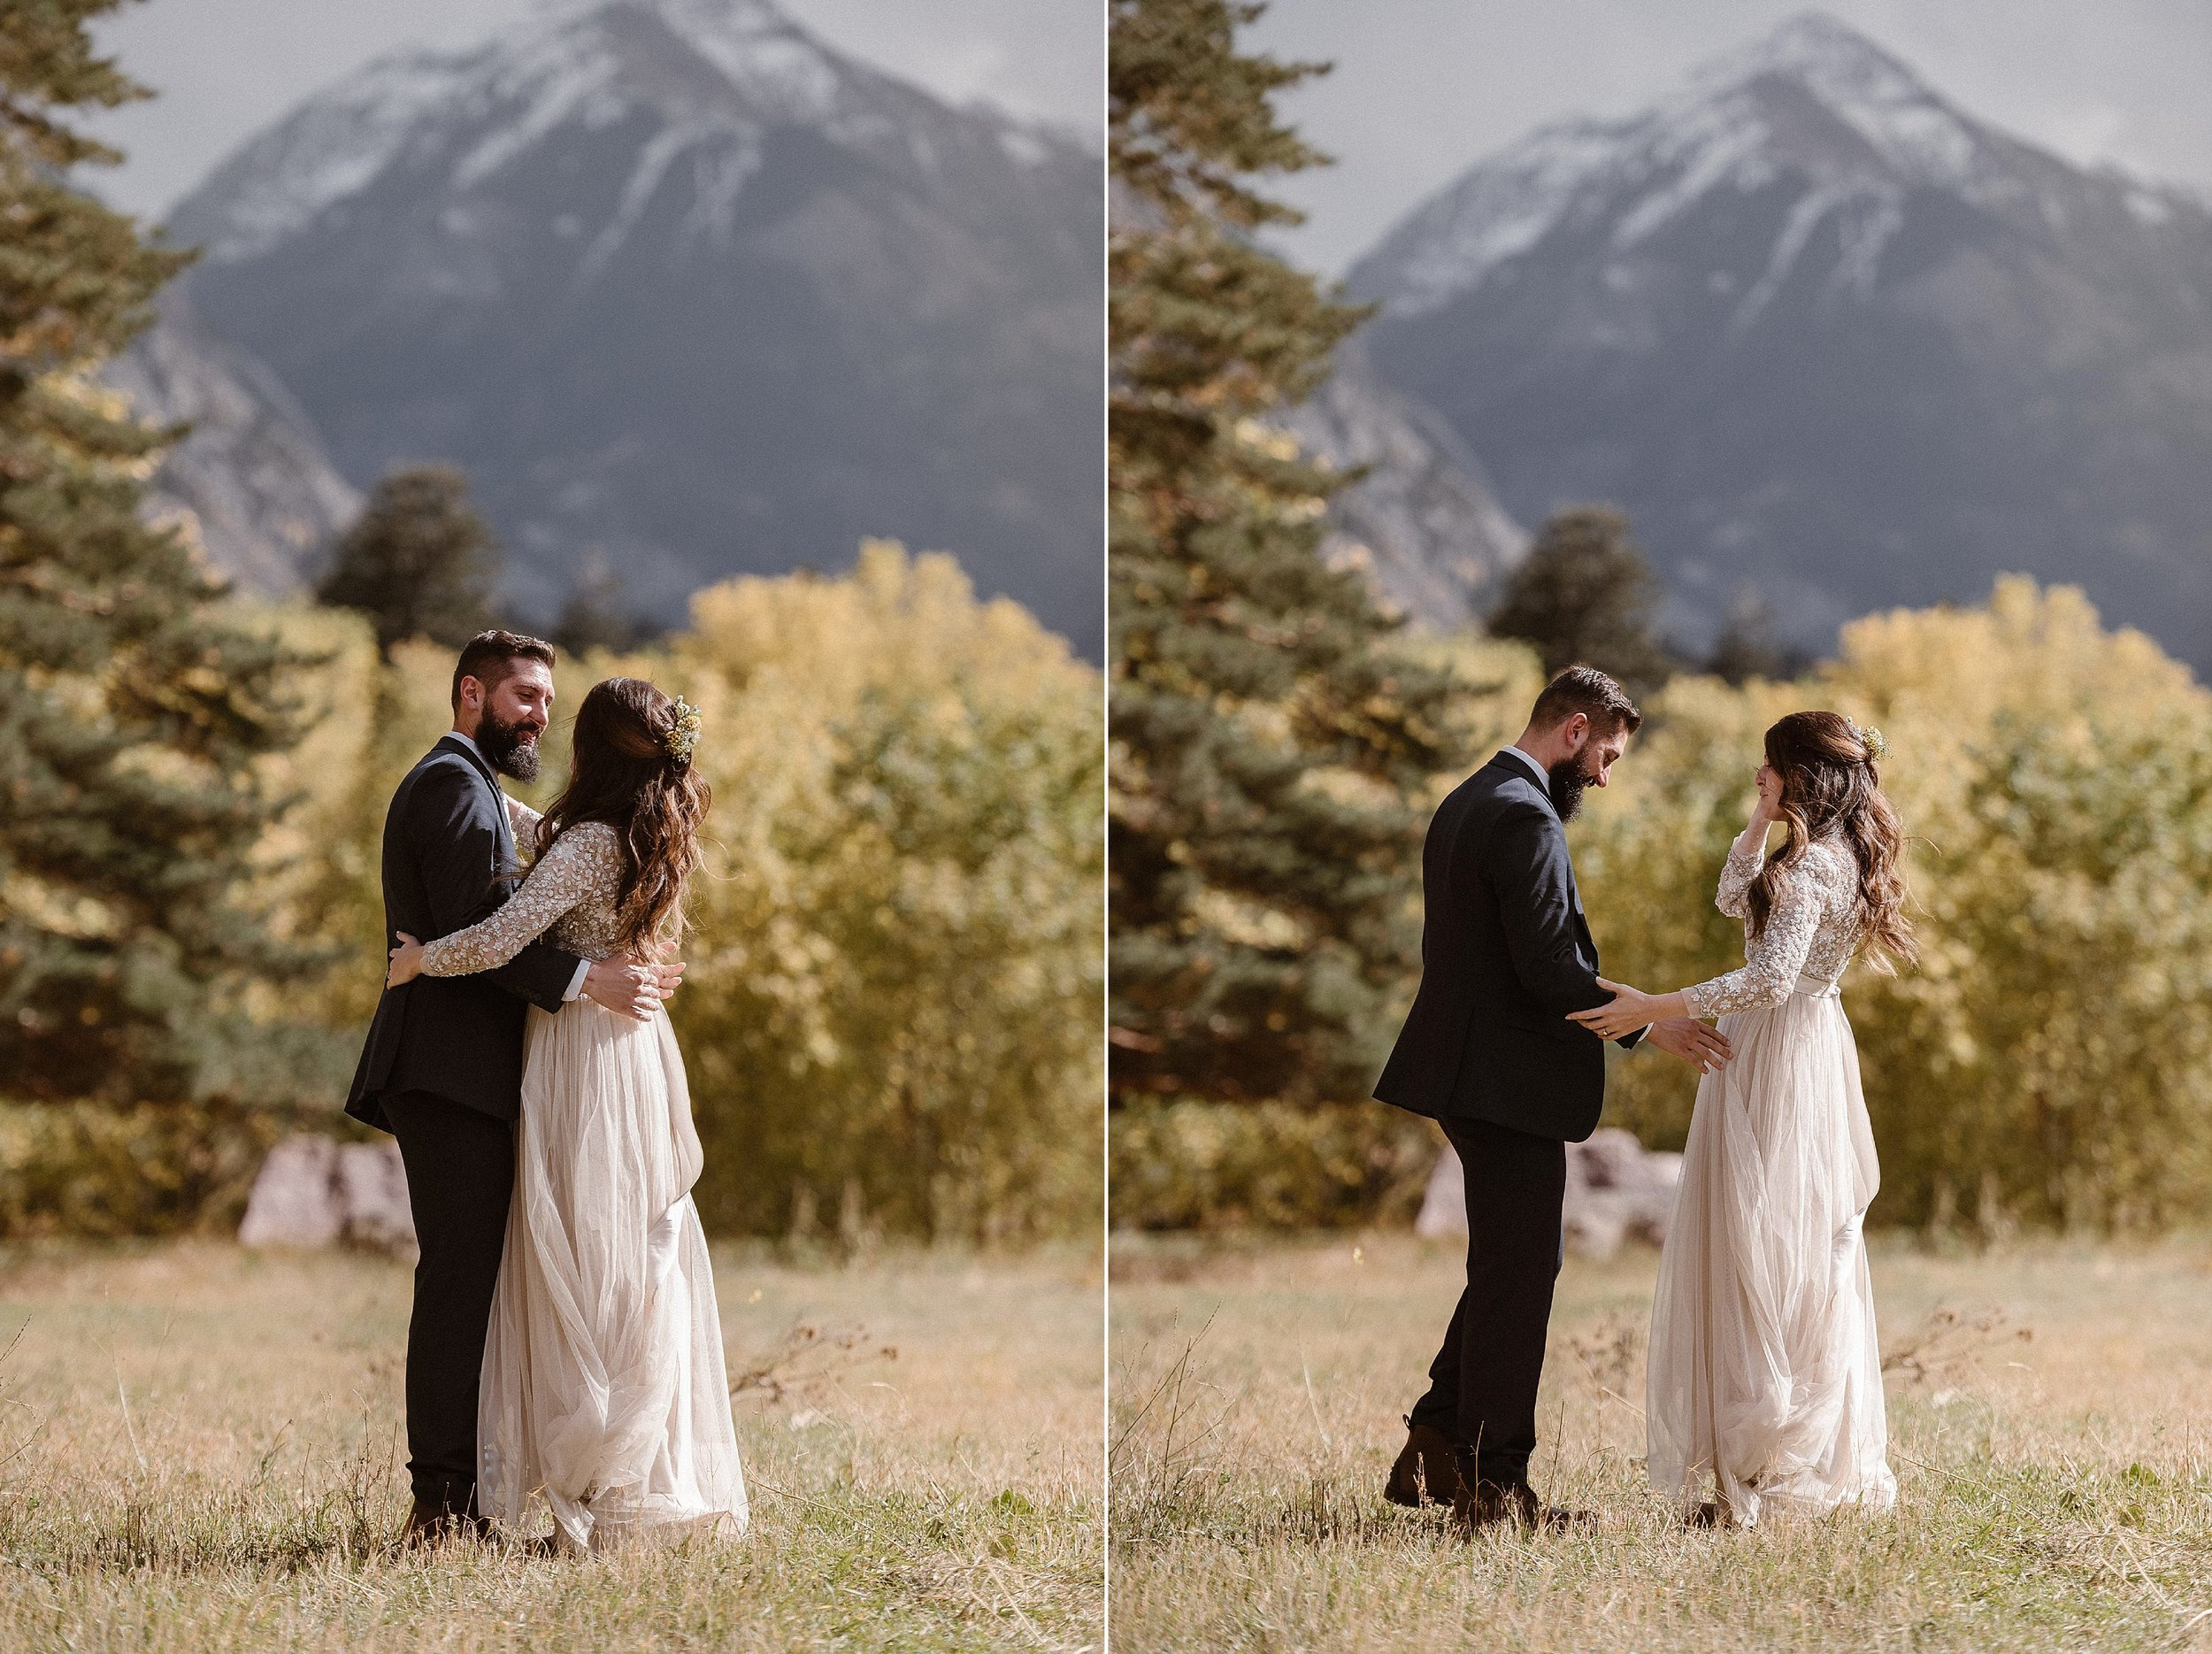 Taking a moment to bask in the mountain sunlight, Jen and Dan shared a private emotional moment before they headed for the adventure to begin a lifetime. This romantic Ouray elopement hiking through Yankee Boy Basin was photographed by traveling wedding photographer Maddie Mae.